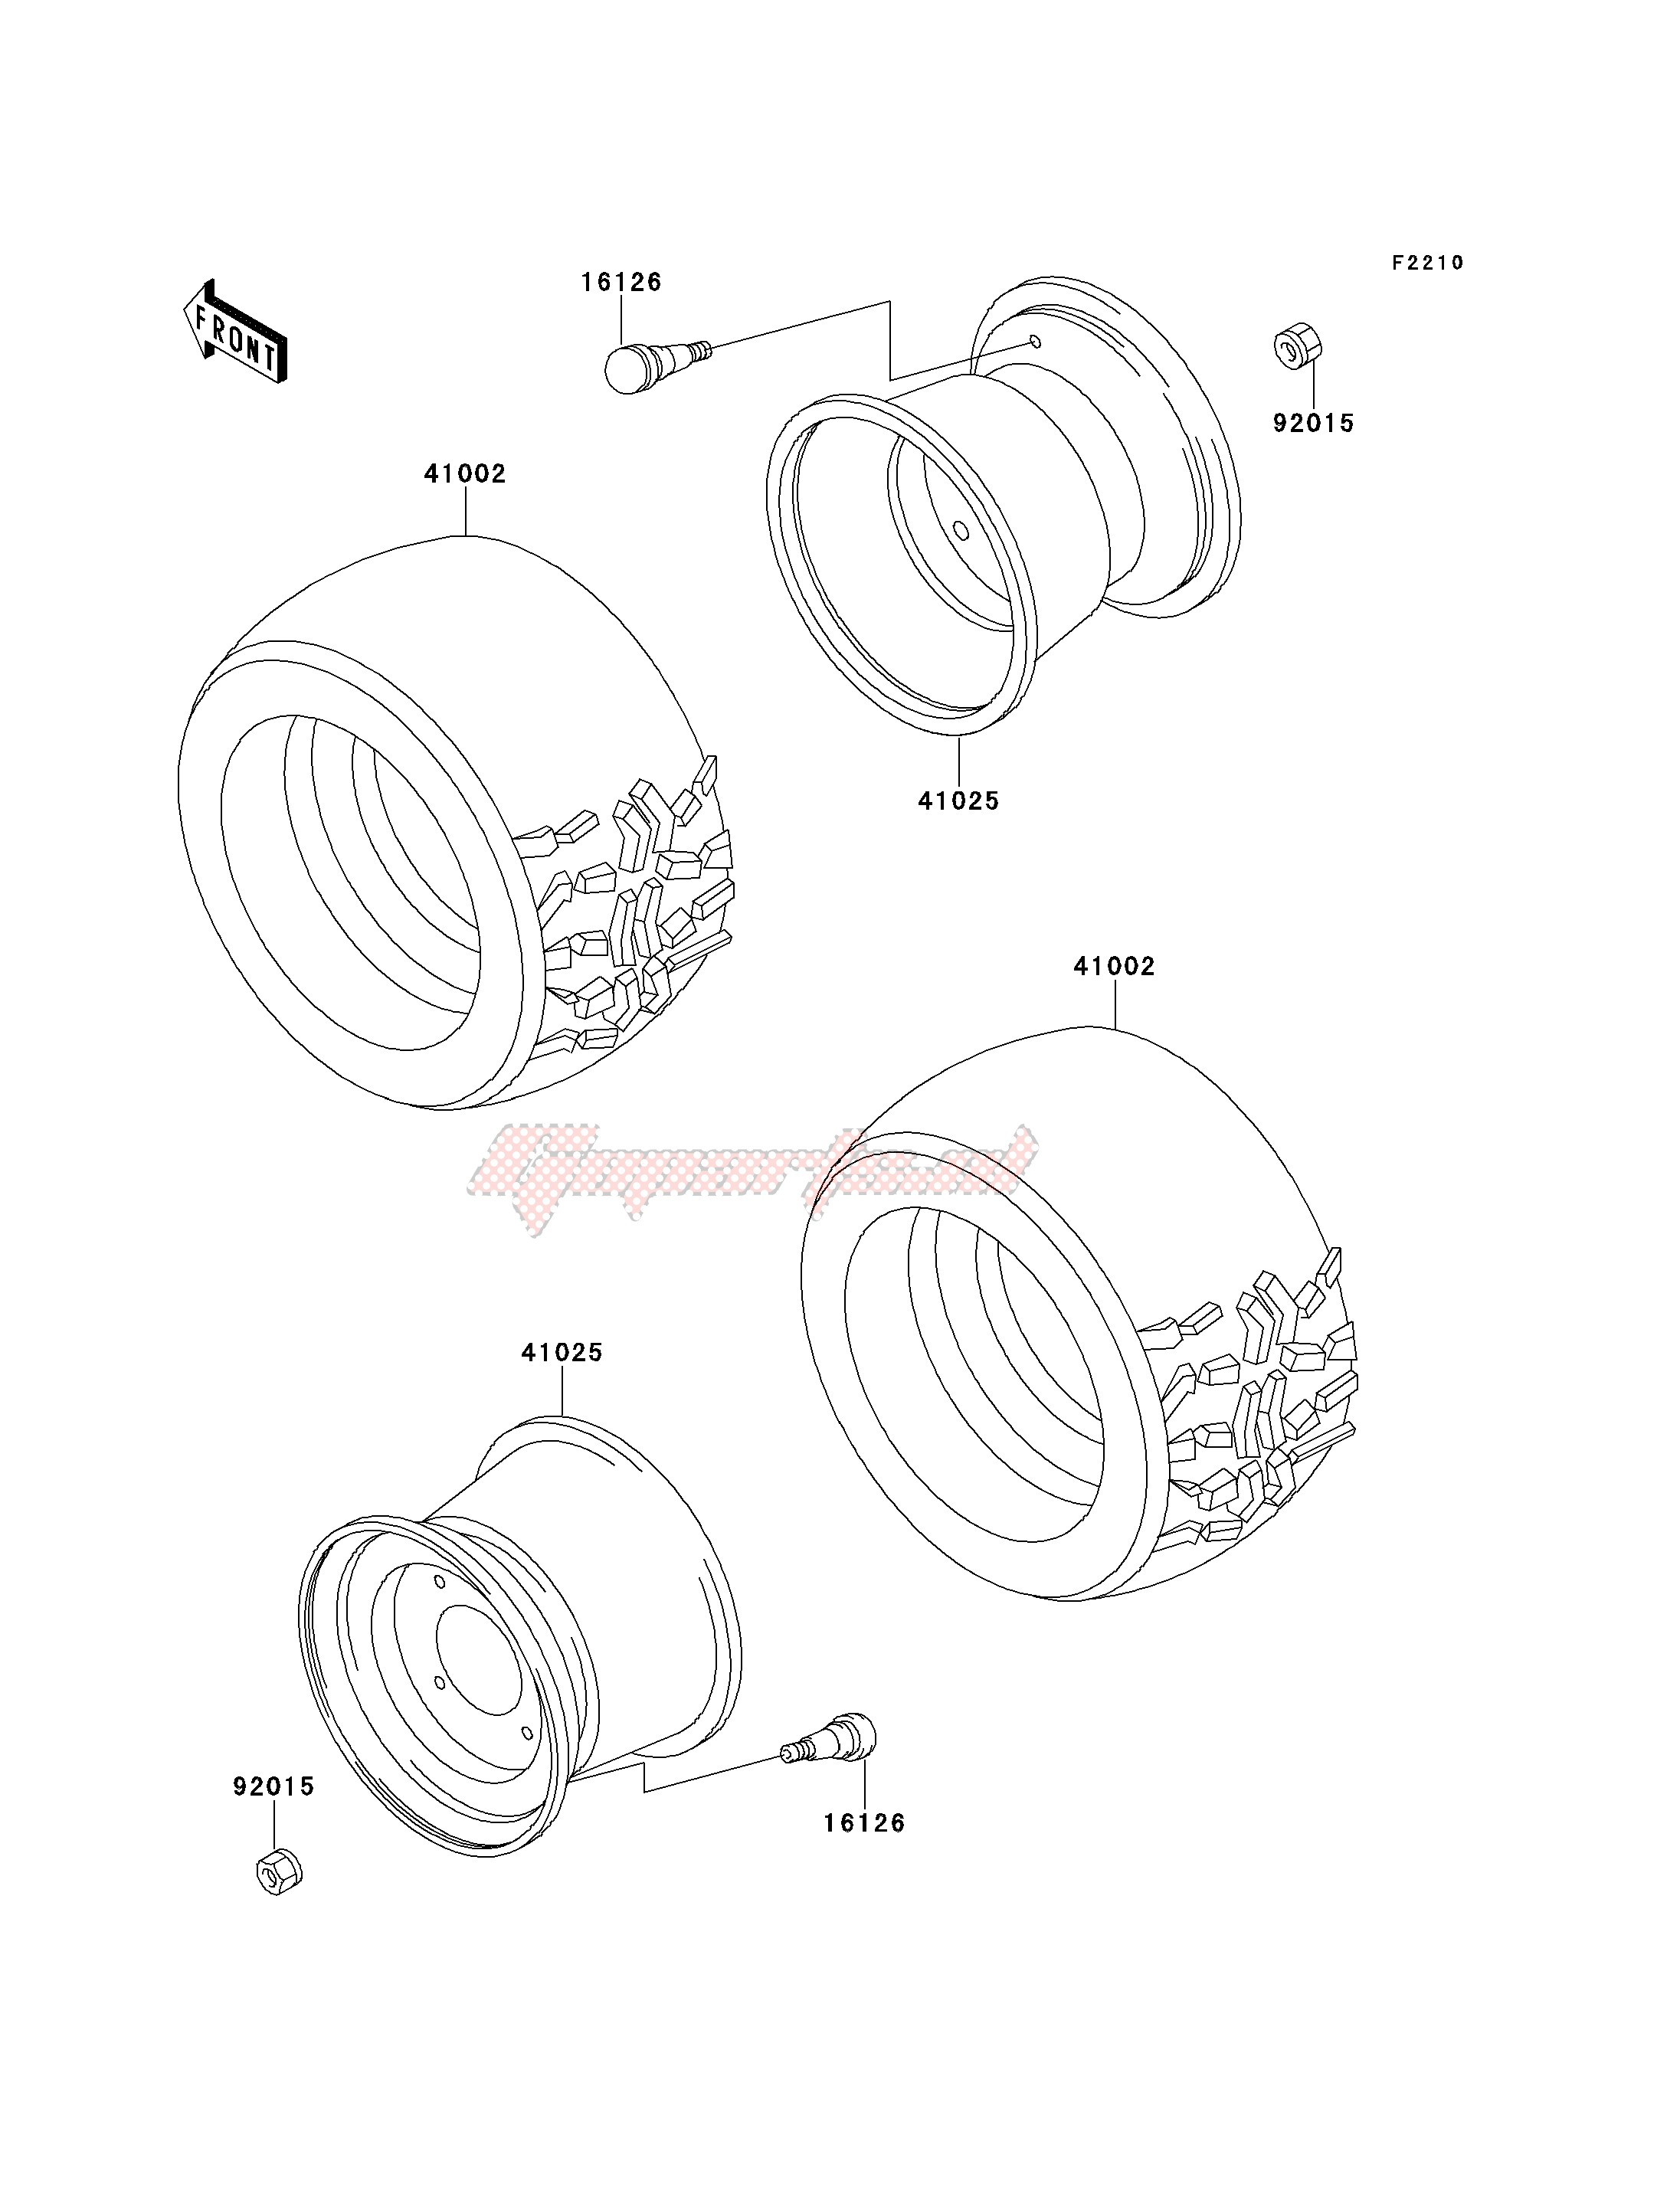 WHEELS_TIRES image